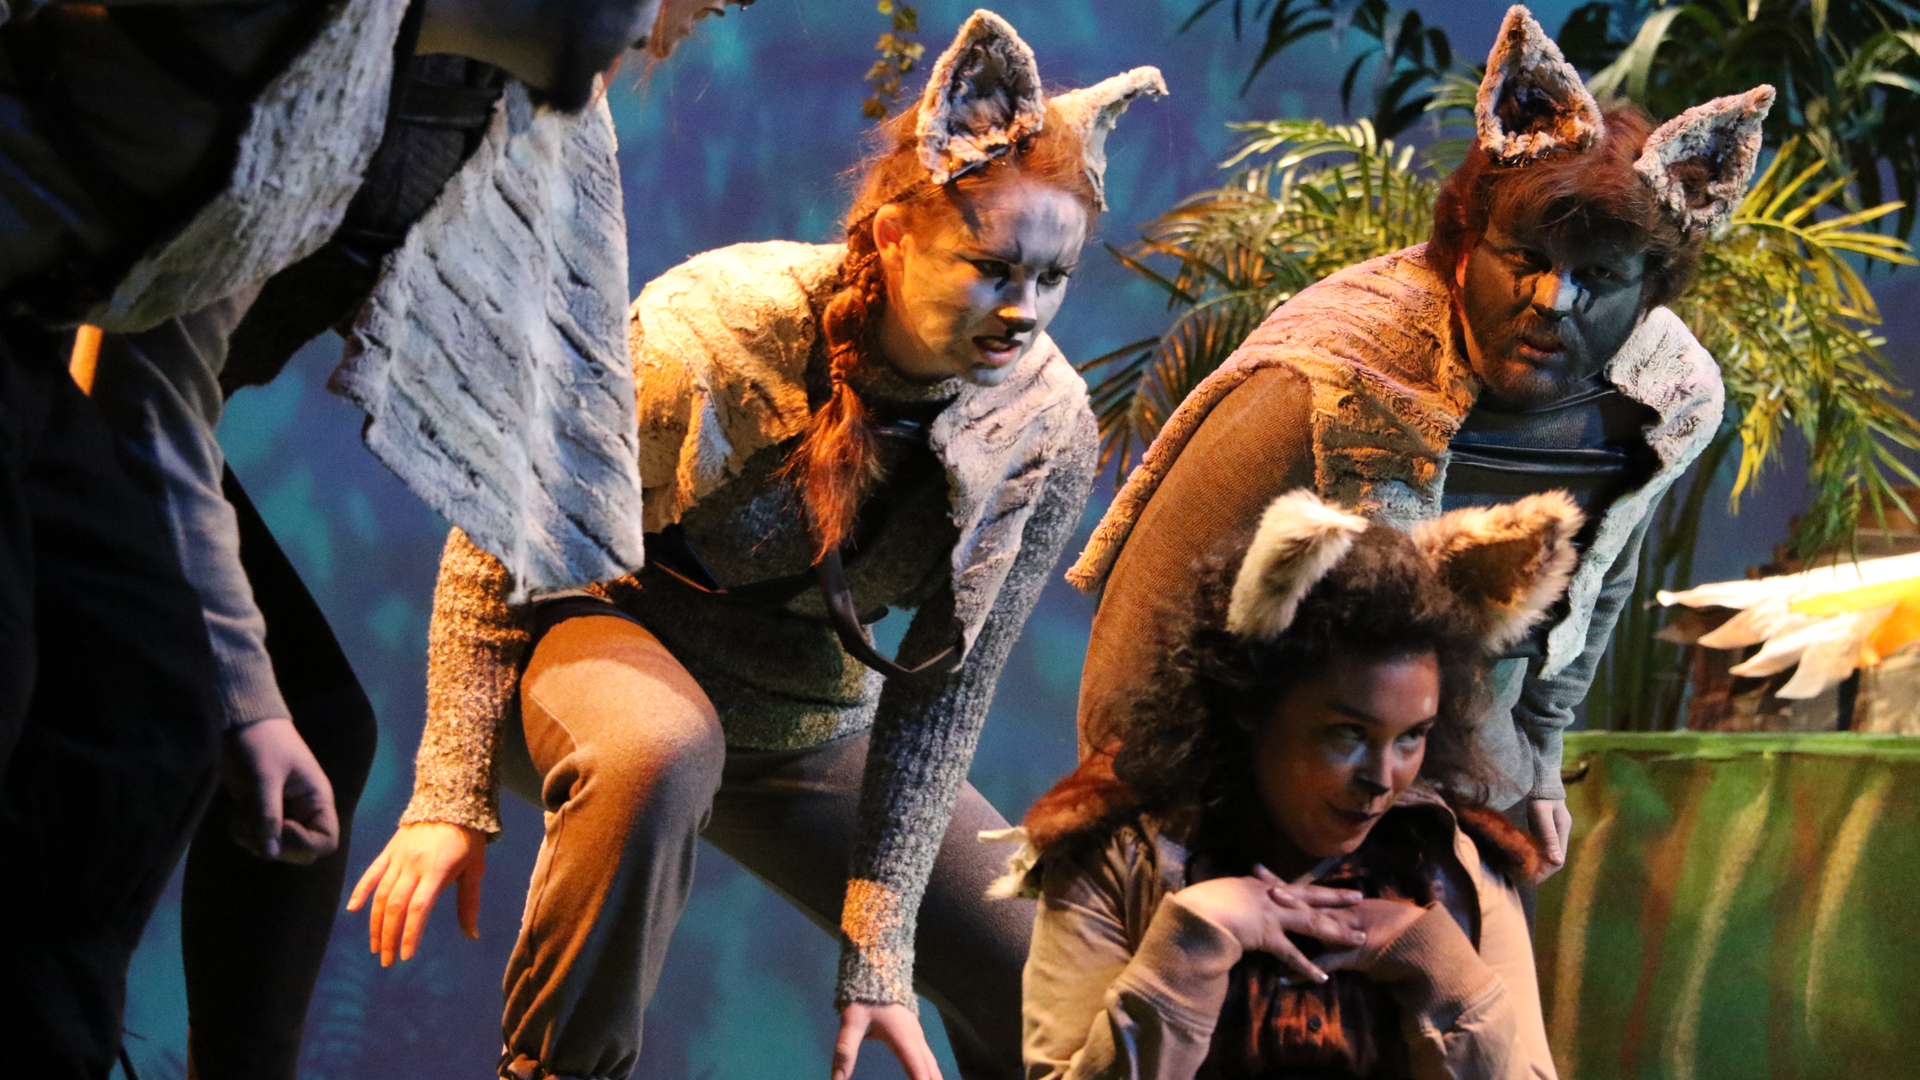 The Jungle Book performance at WSC